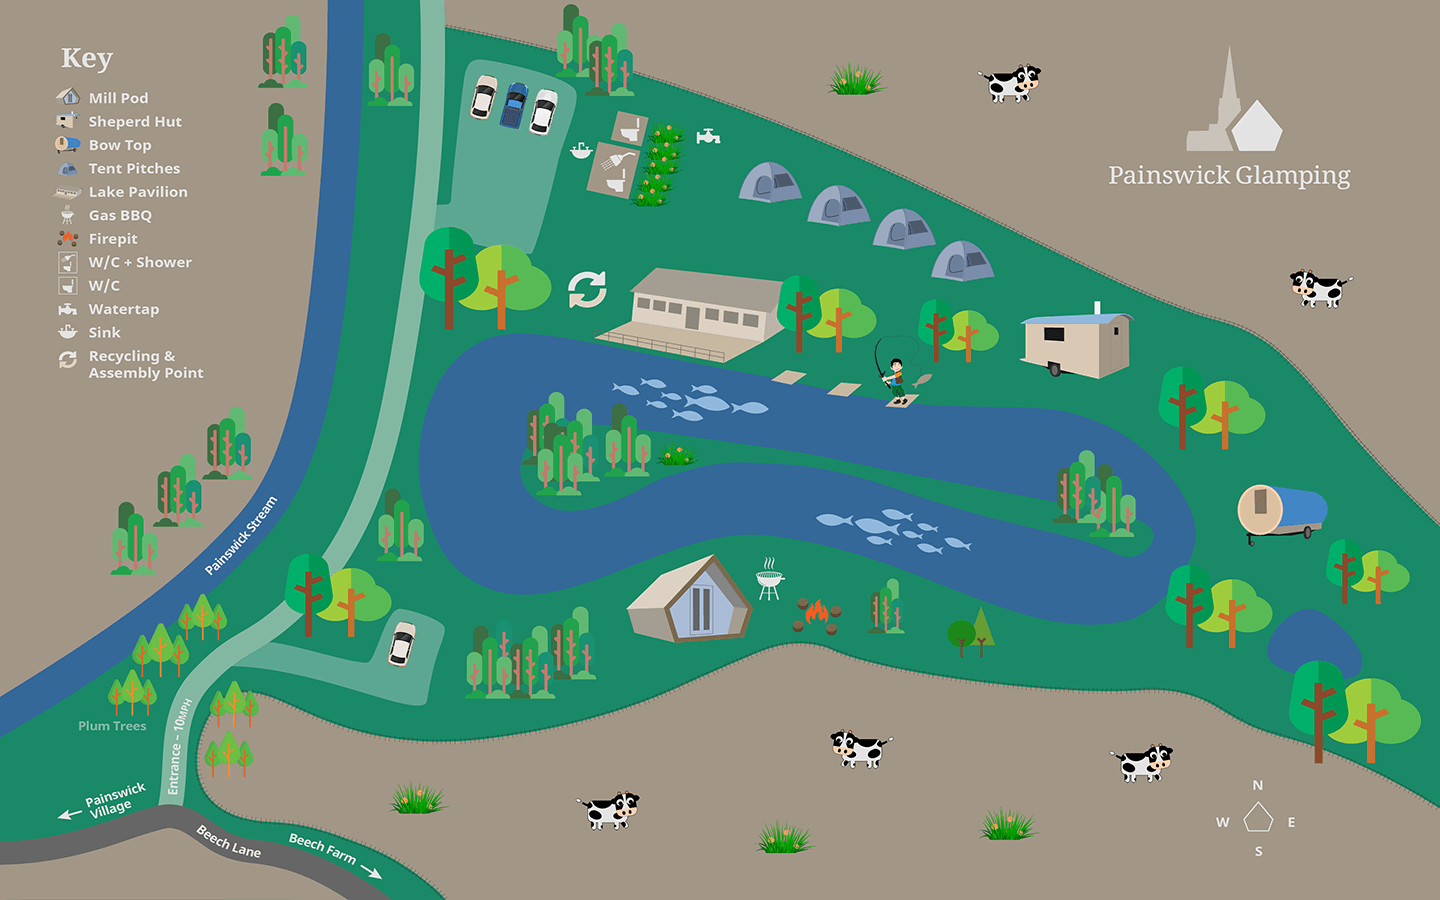 Painswick Glamping Illustrated Site Map - 2018